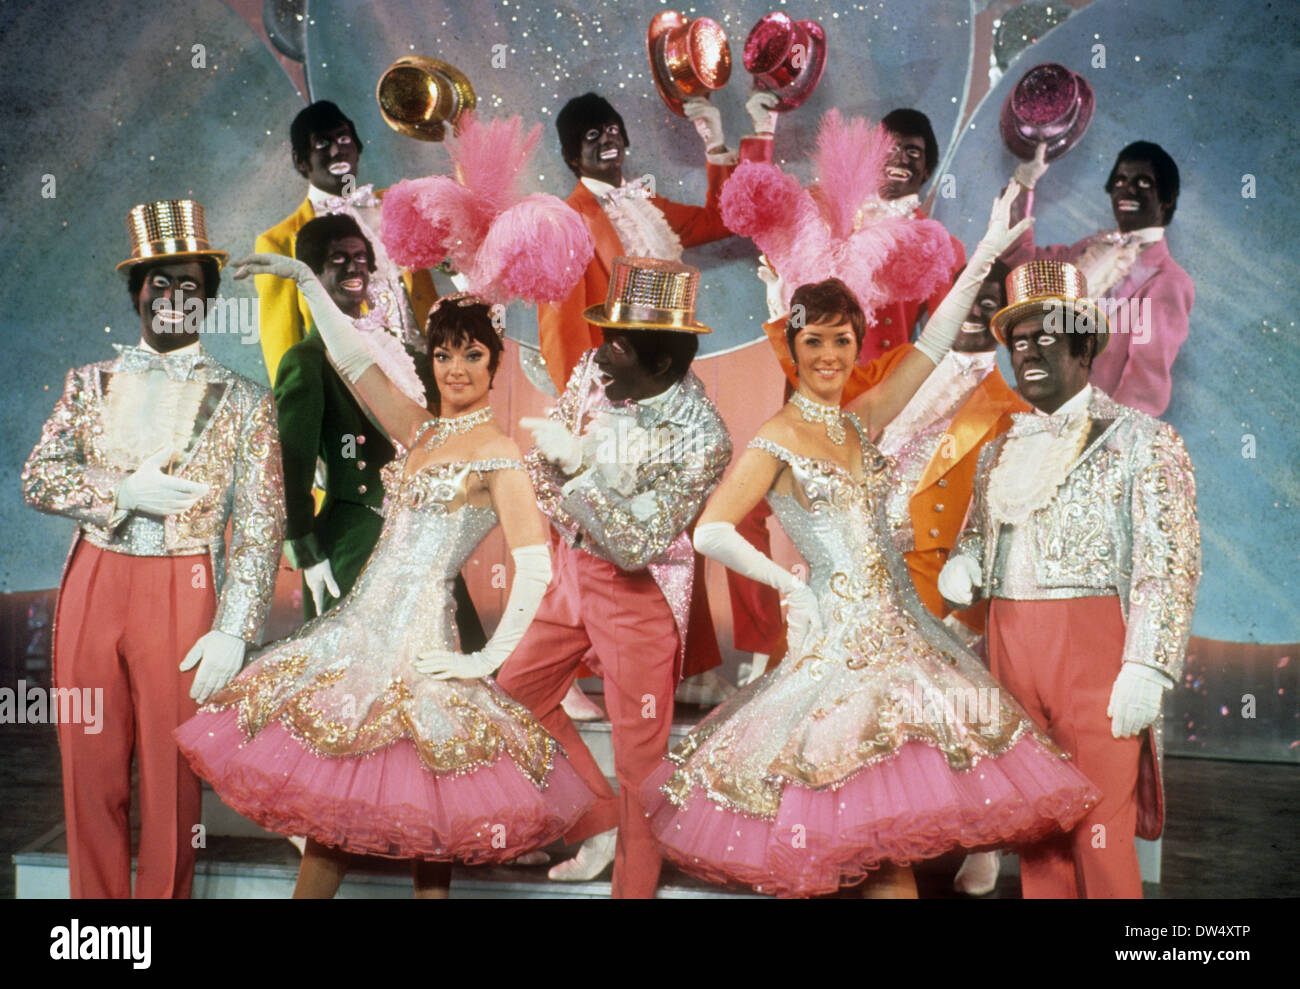 Black and white minstrel show on bbc tv about 1962 stock image